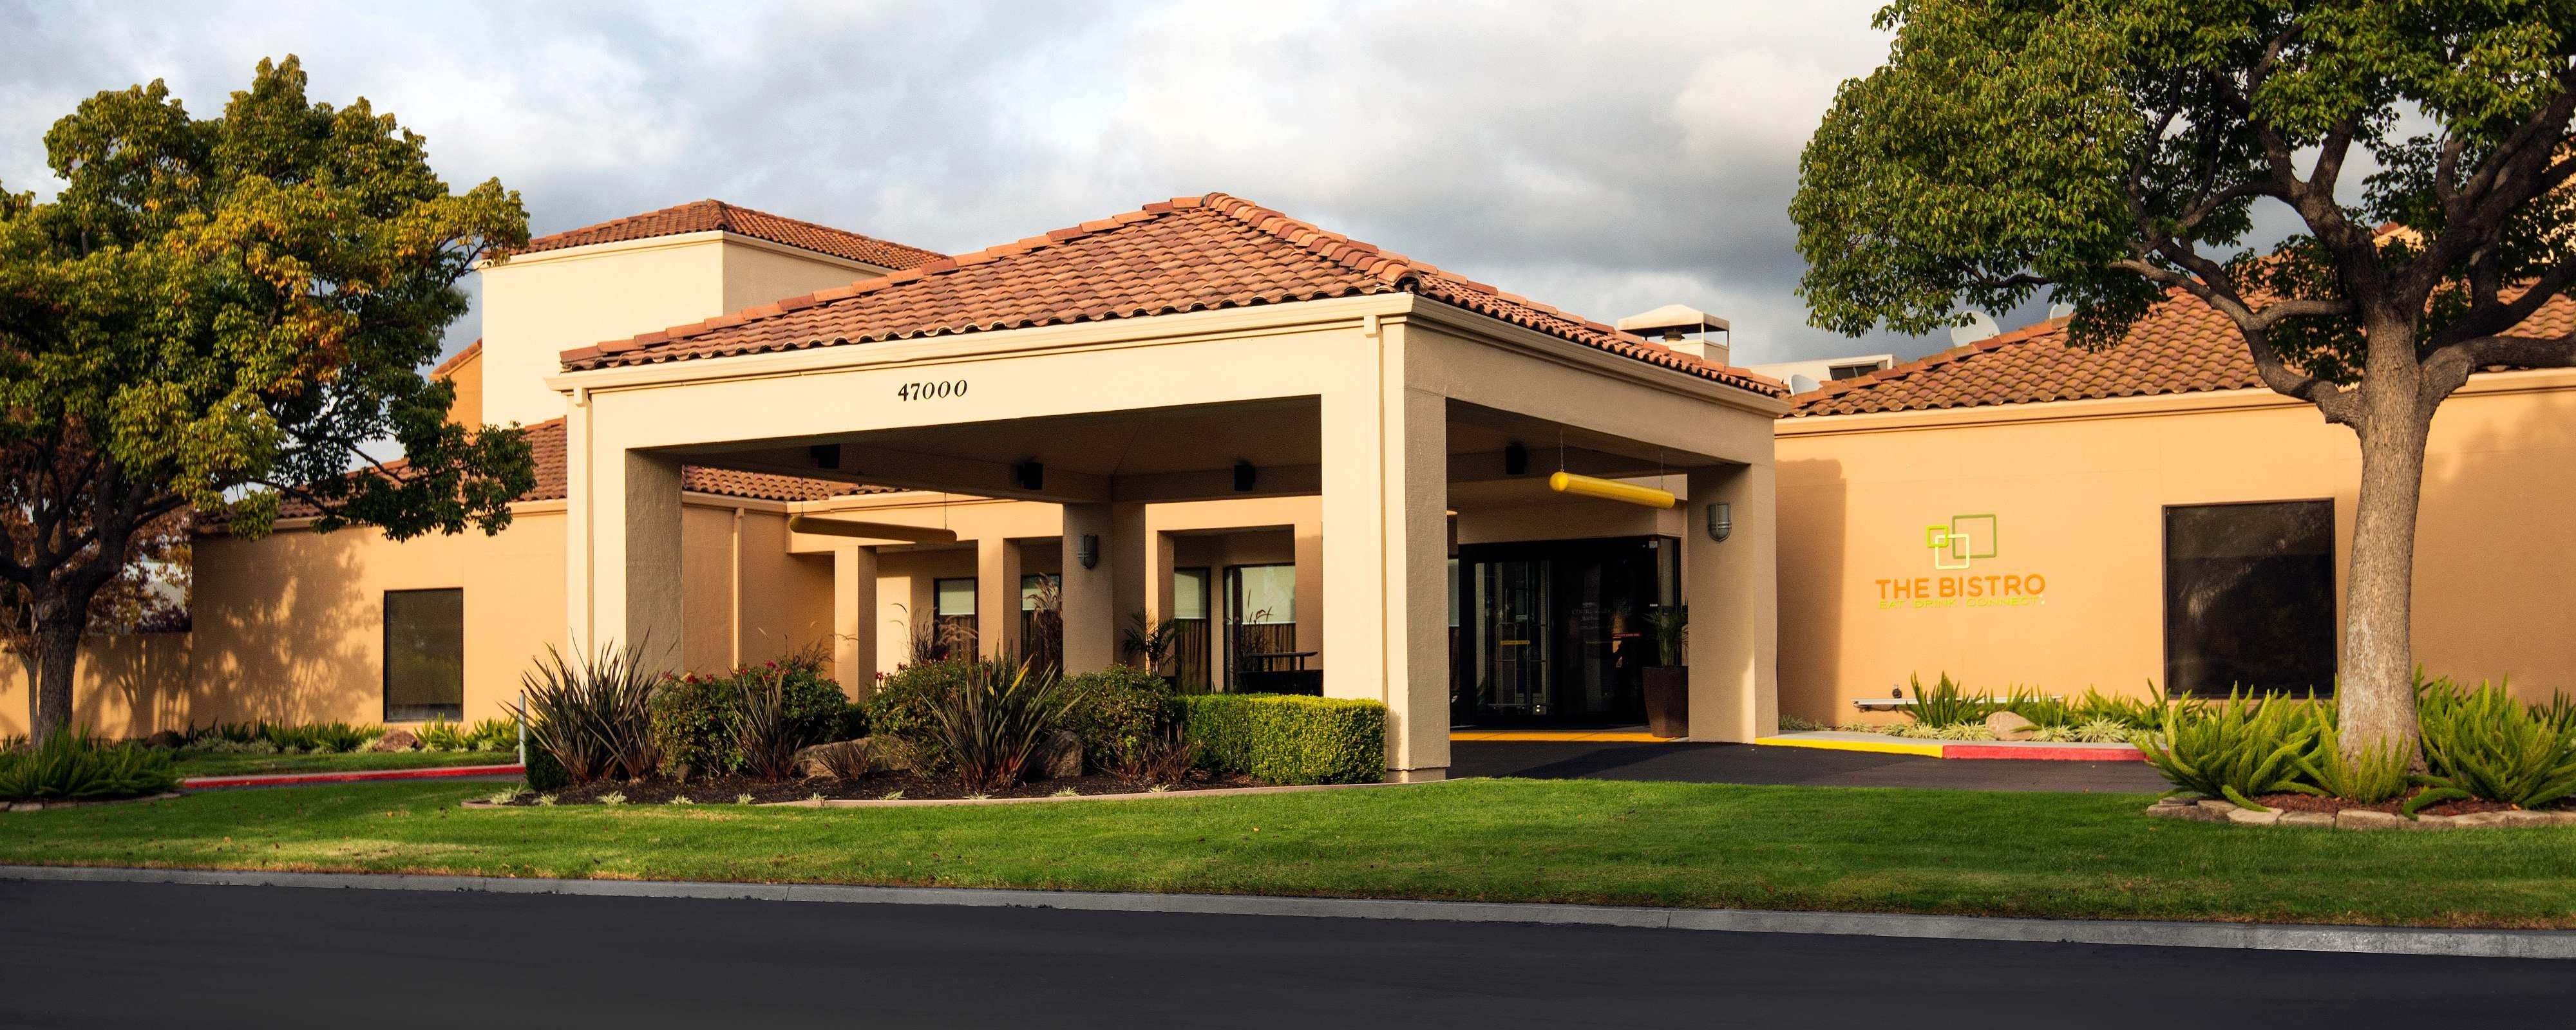 Fremont Hotels in California | Courtyard Fremont Silicon Valley